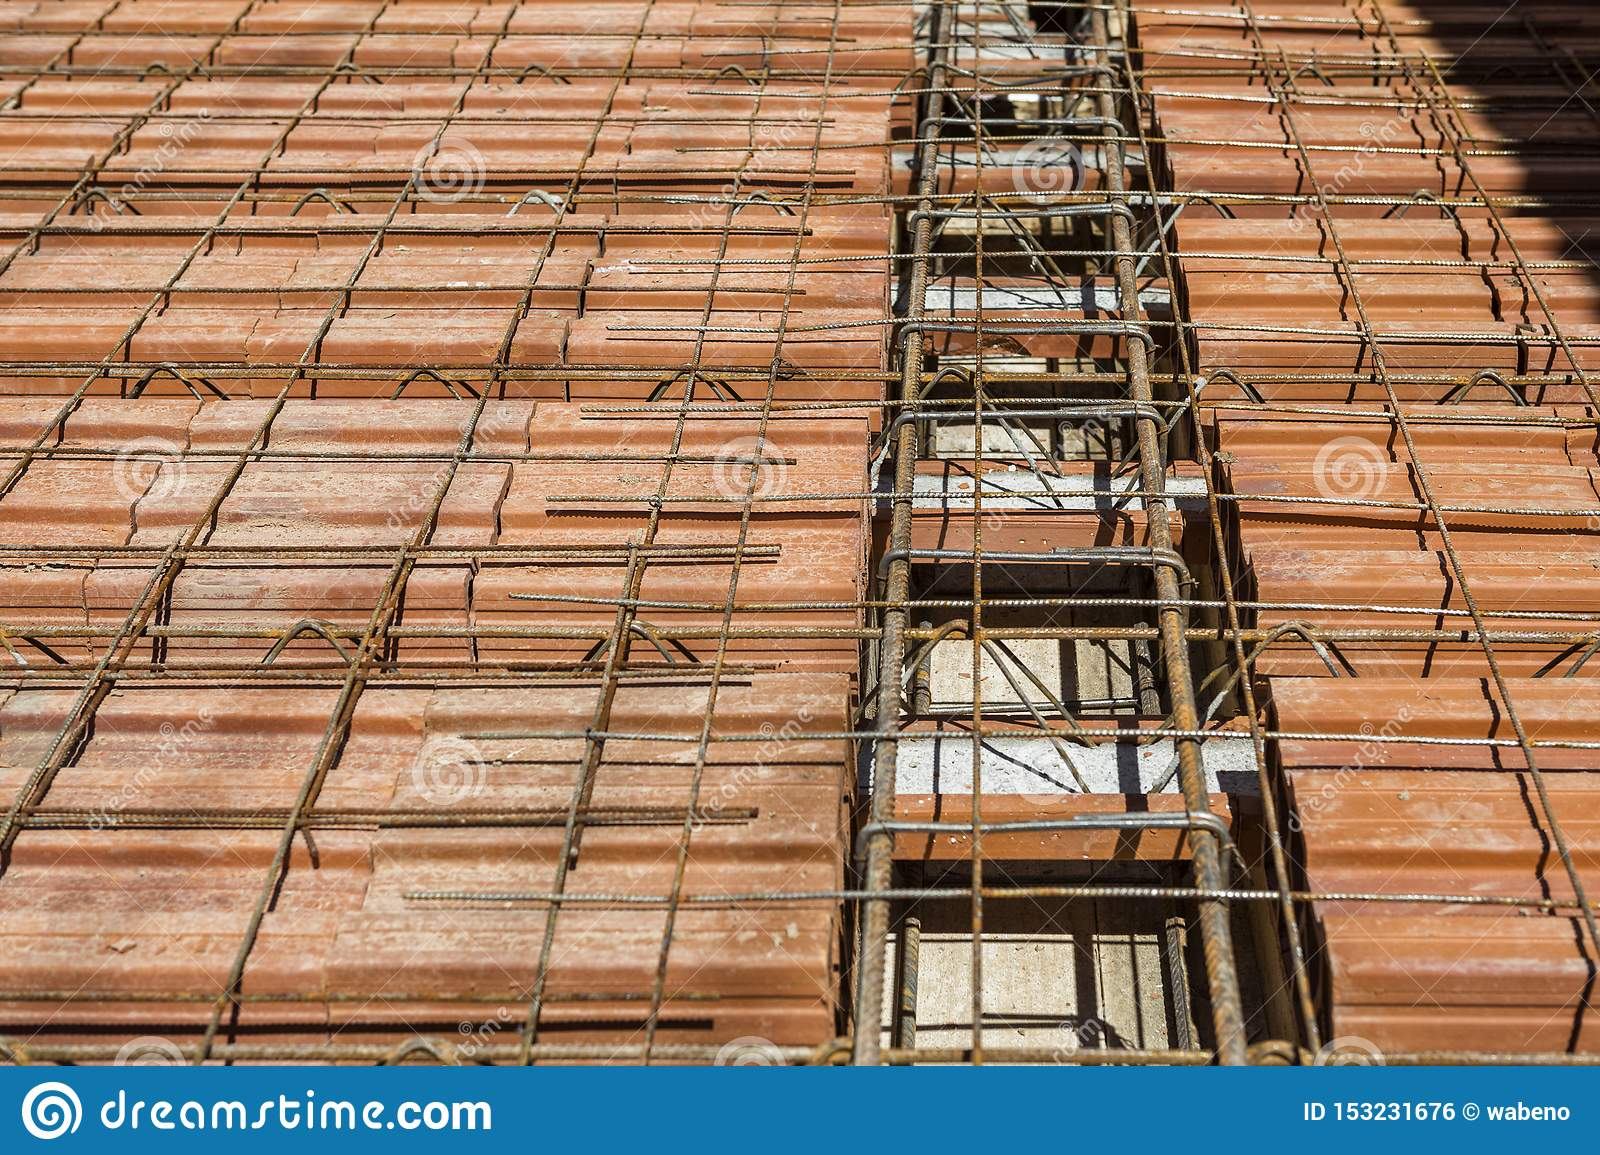 Lattice Joist For Reinforced Concrete Floor Slab And Clay Block